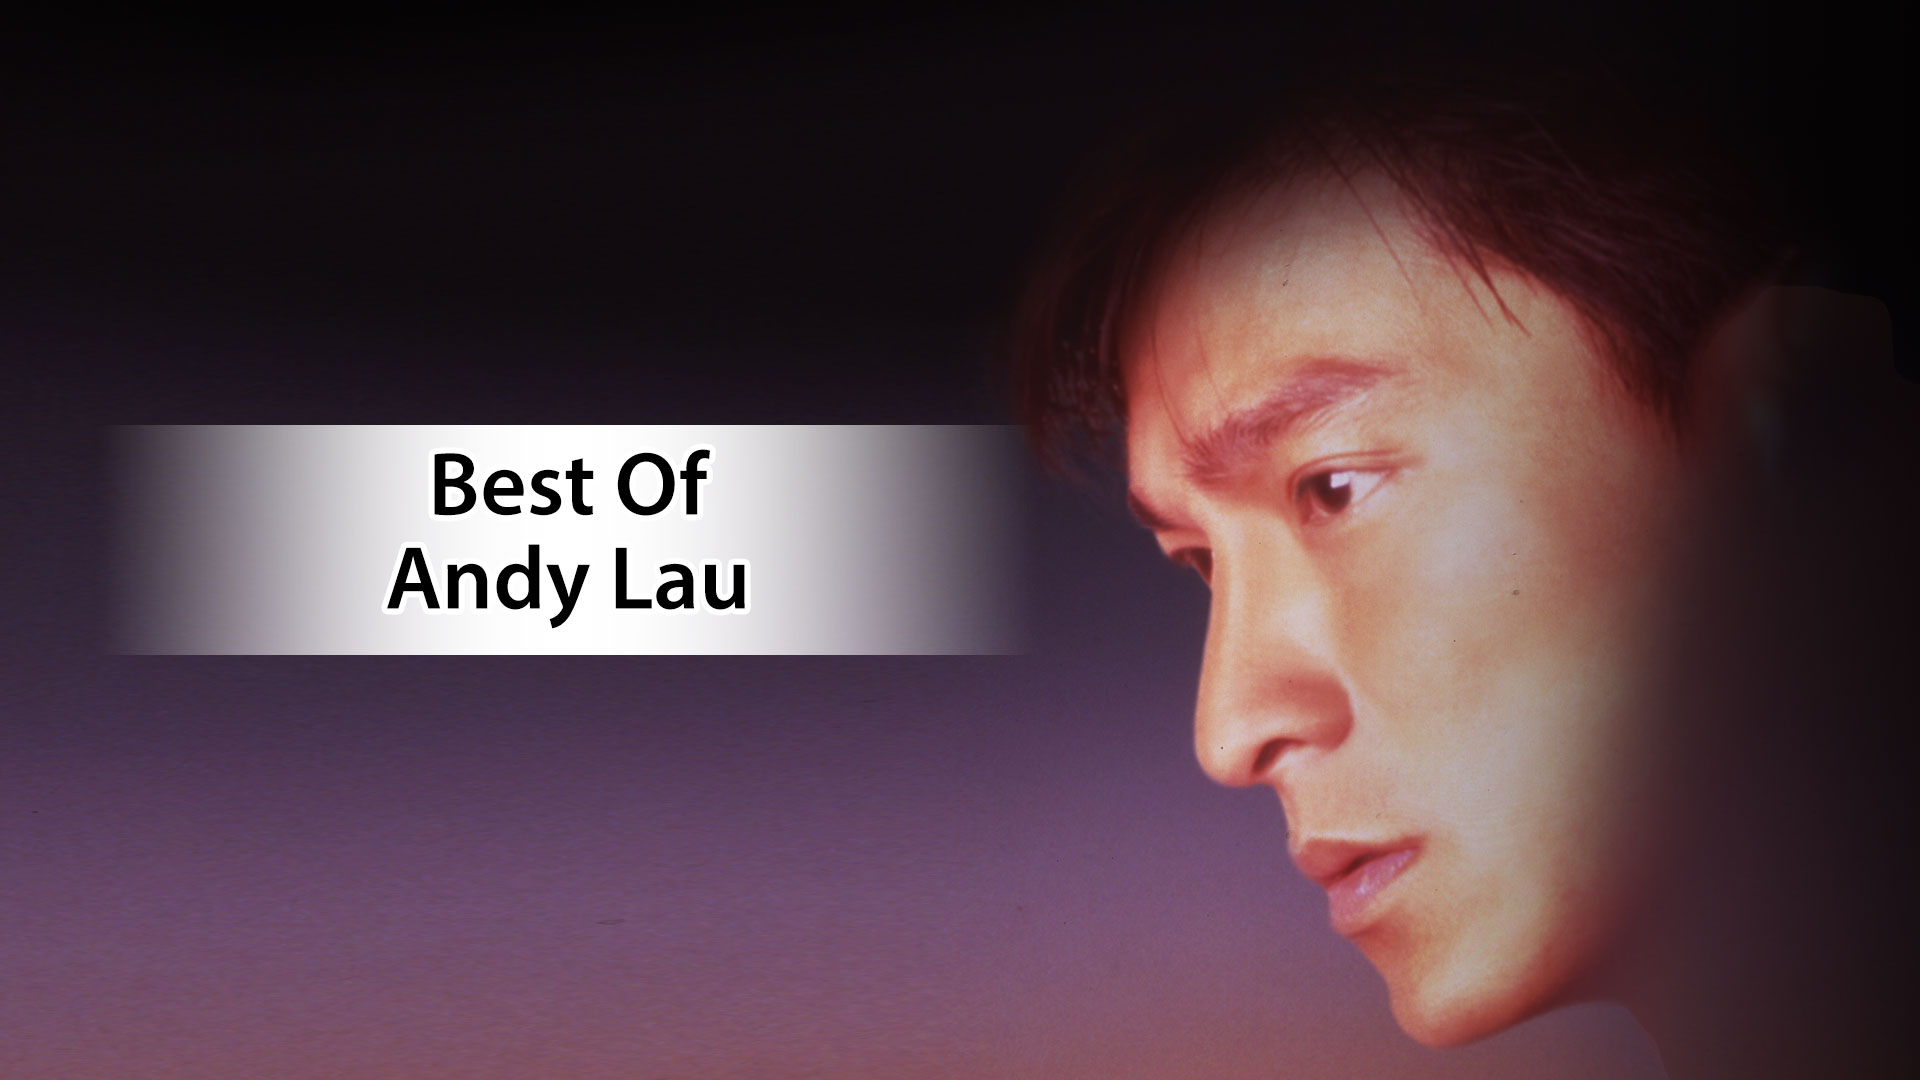 BEST OF ANDY LAU